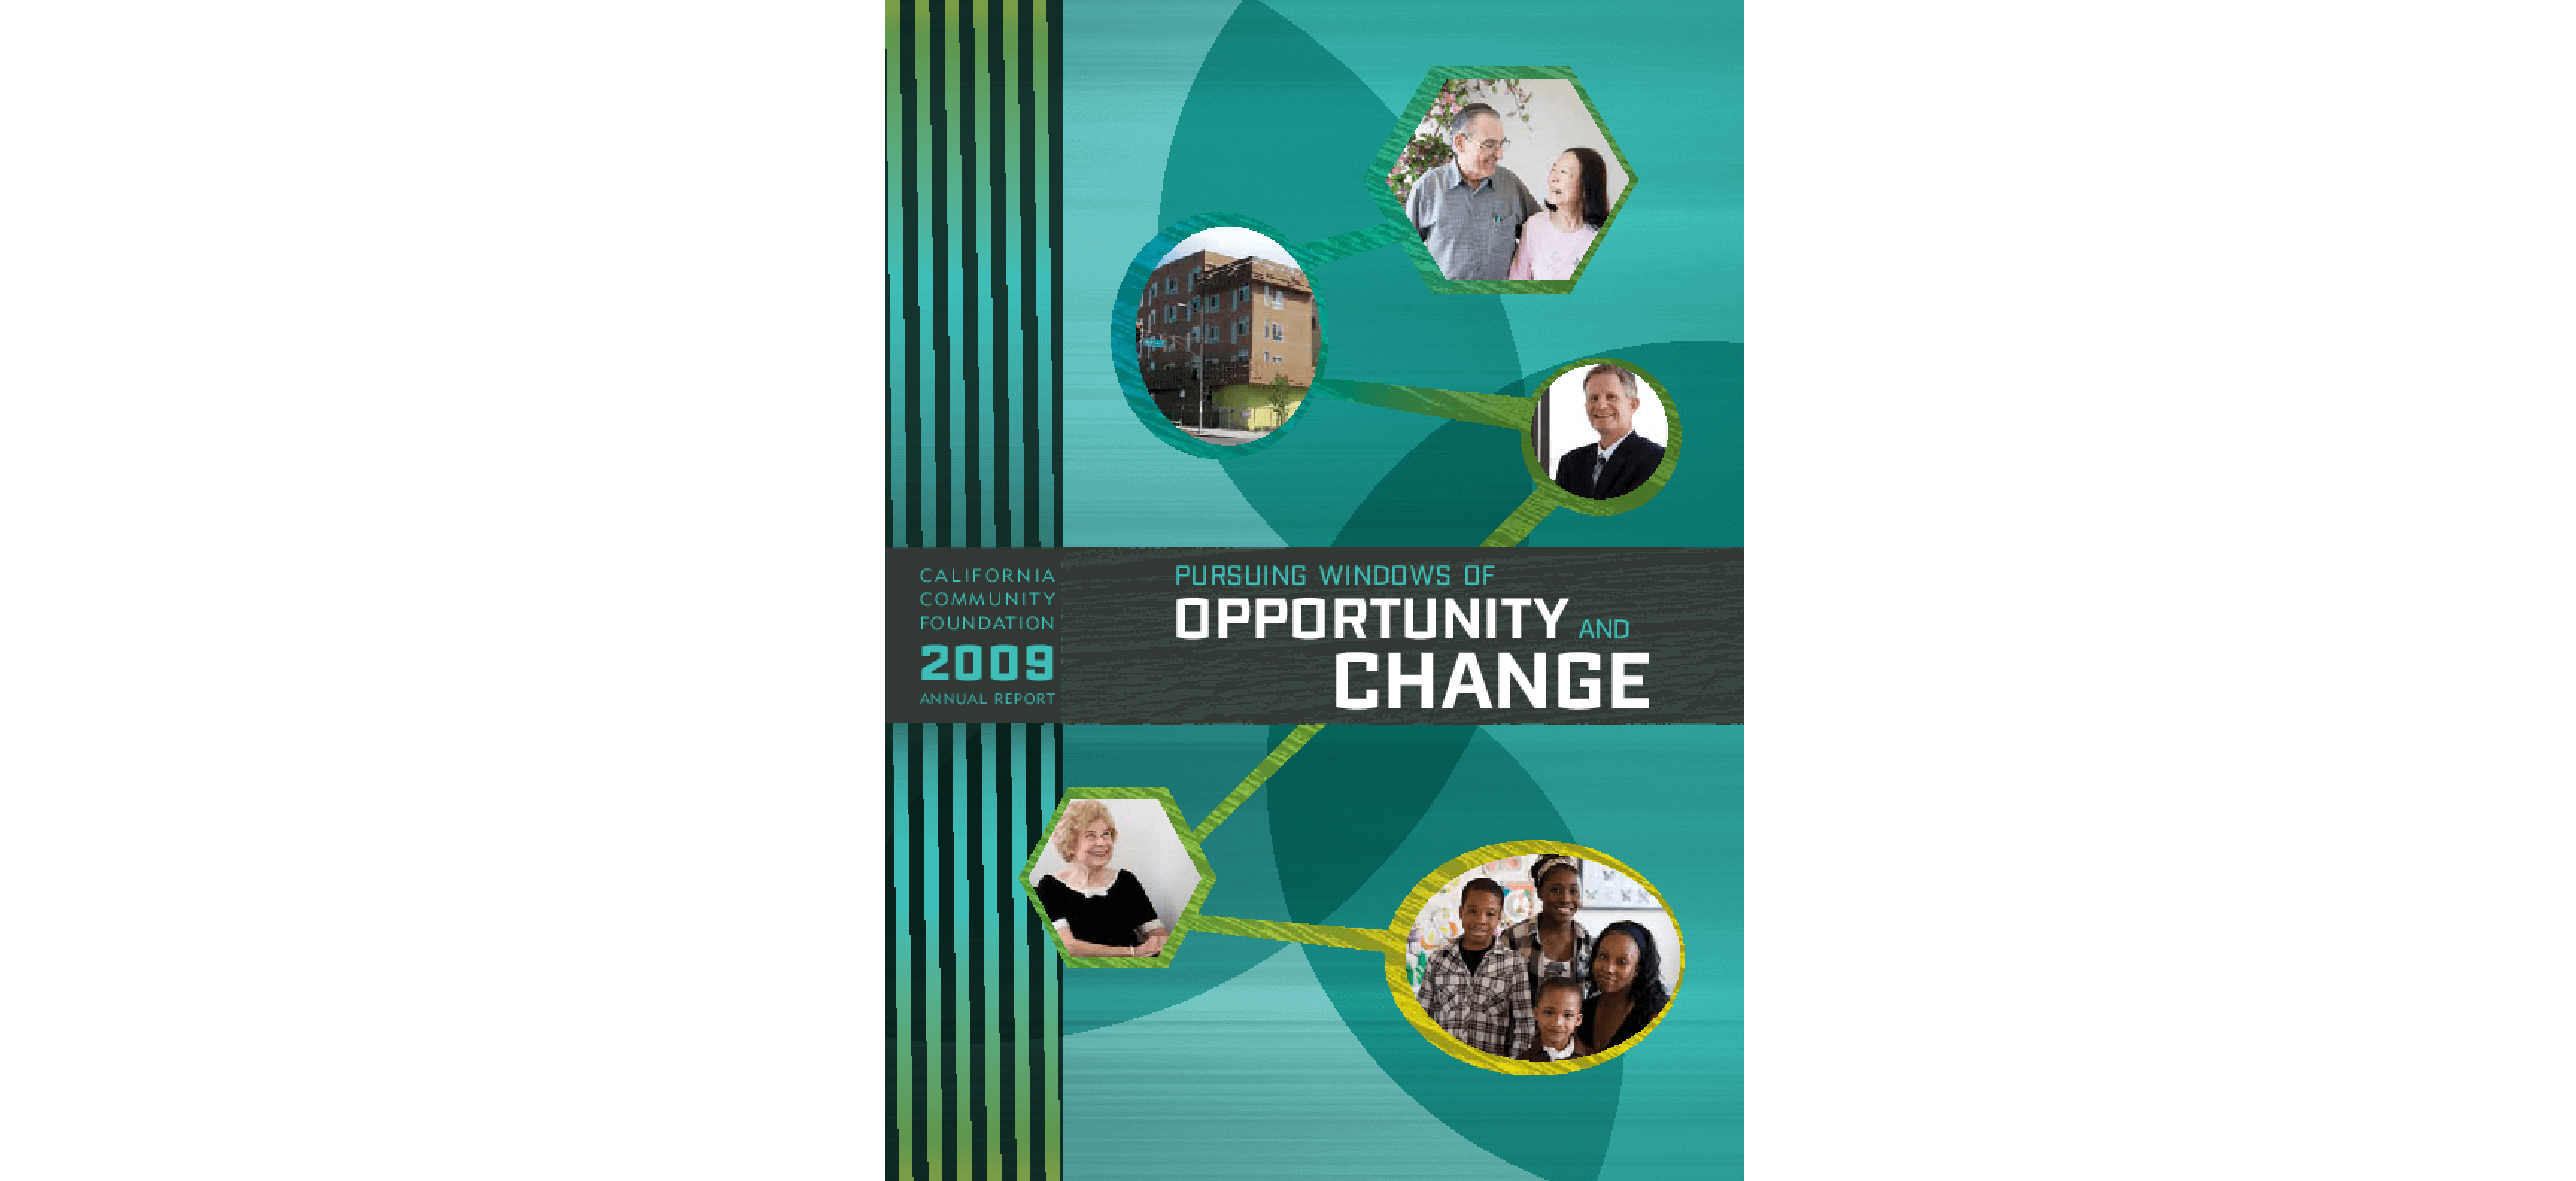 California Community Foundation - 2009 Annual Report: Pursuing Windows of Opportunity and Change